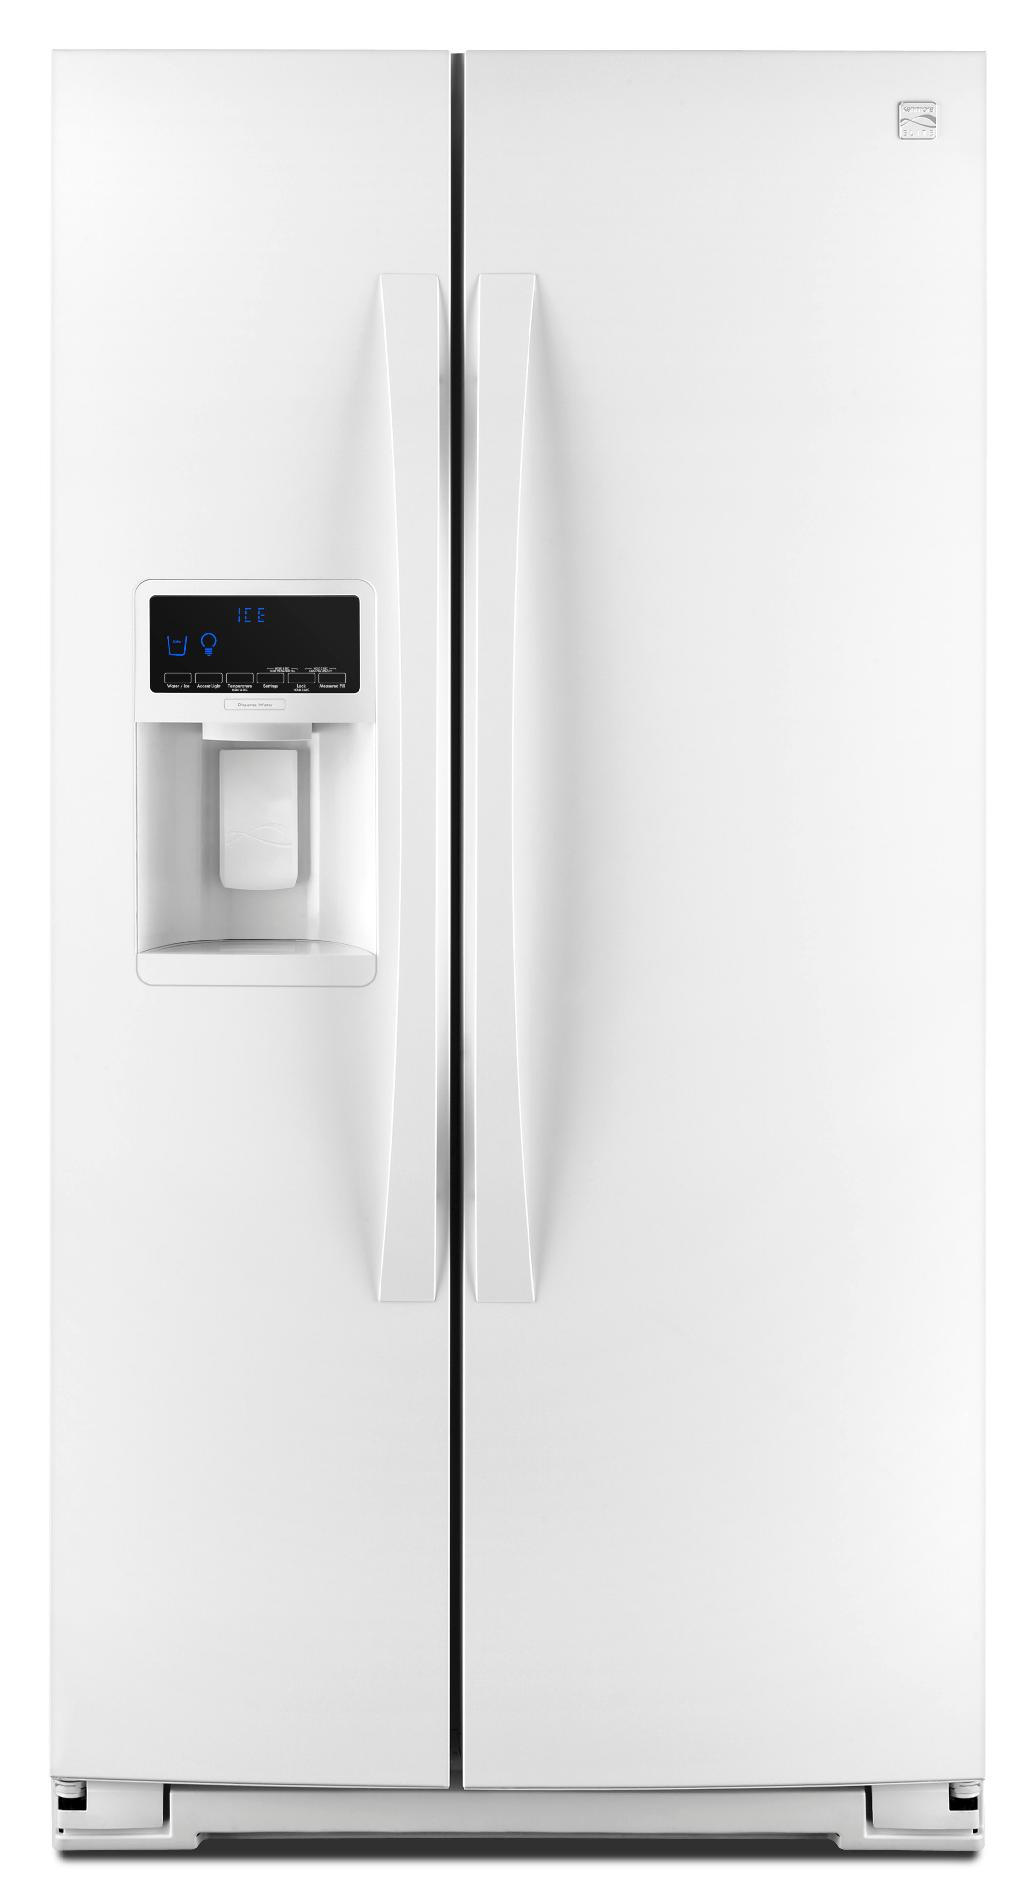 26.5 cu. ft. Side-by-Side Refrigerator - White